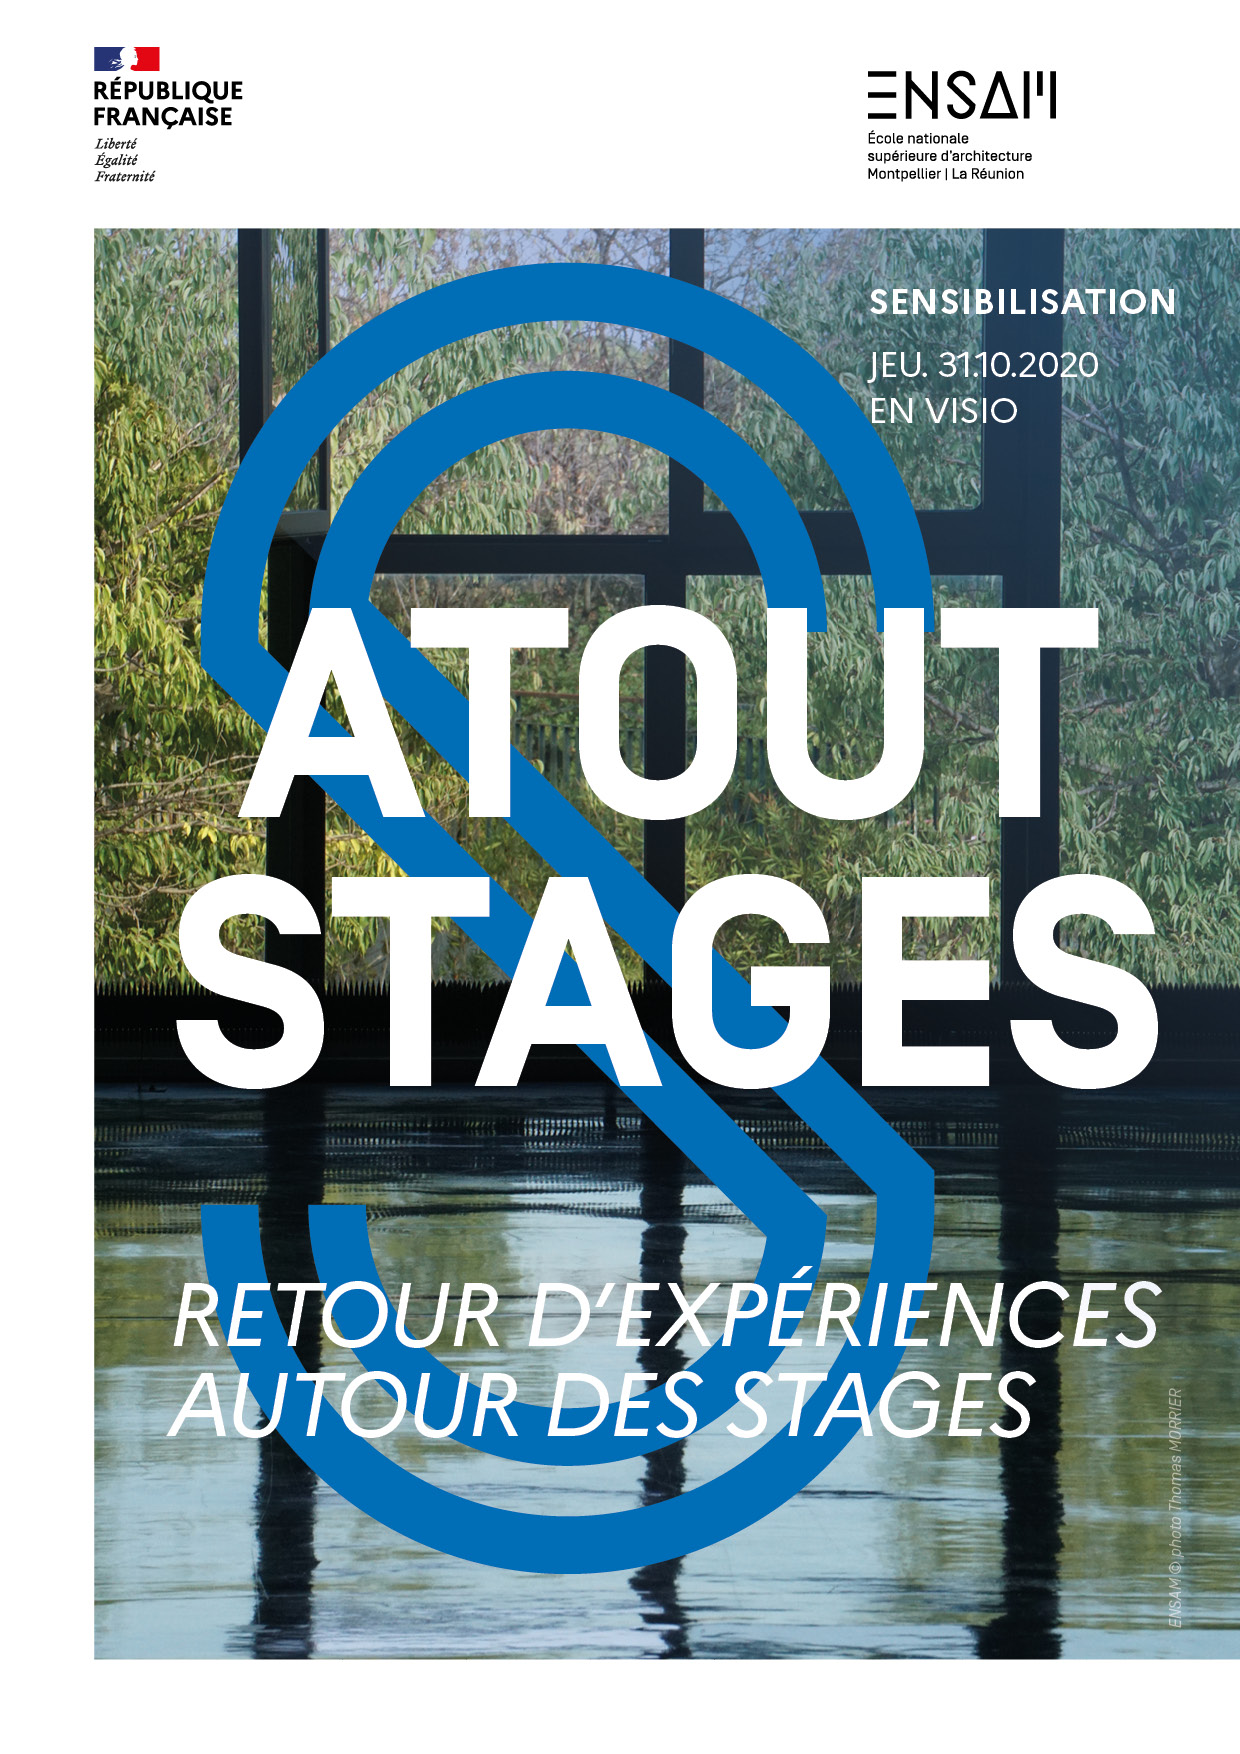 ATOUT STAGES 2020